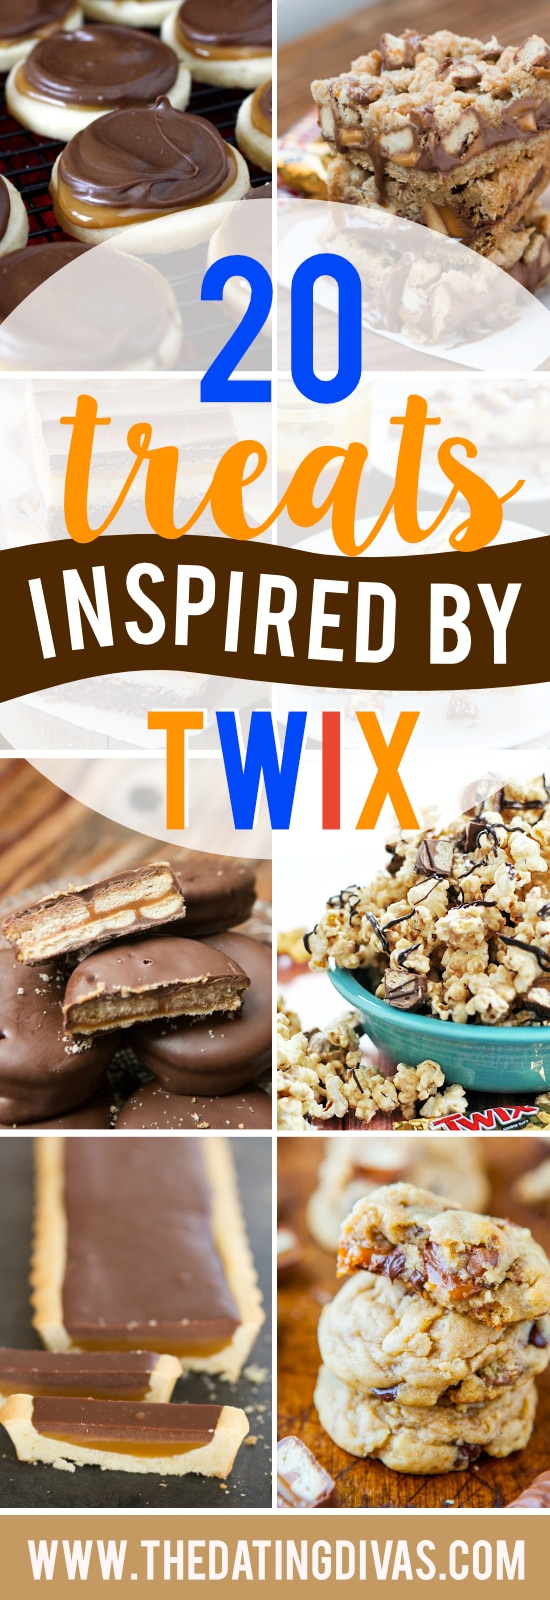 Treats Inspired by Twix